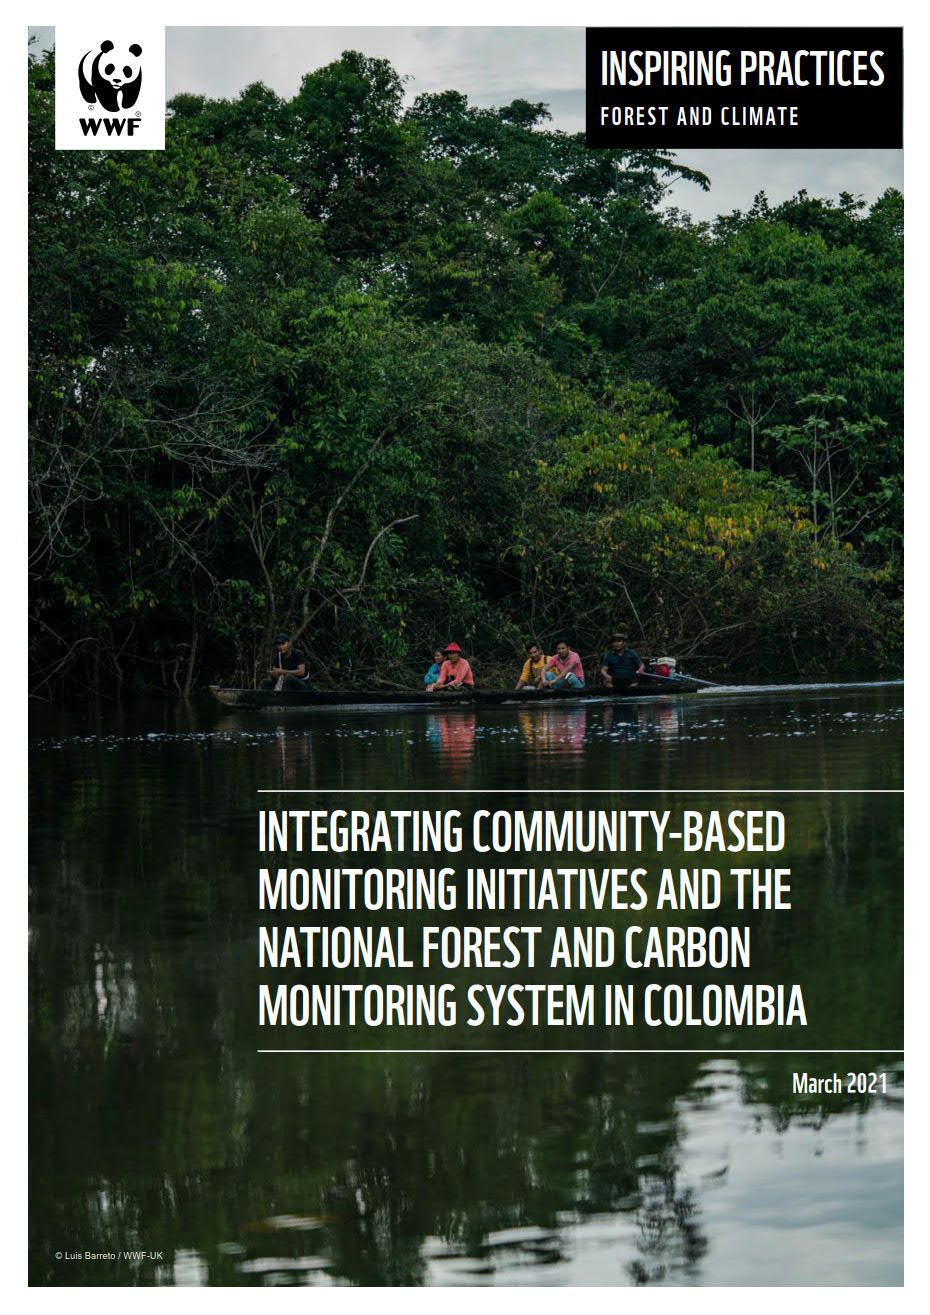 Inspiring Practices: Integrating Community-based Monitoring Initiatives and the National Forest and Carbon Monitoring System in Colombia cover image